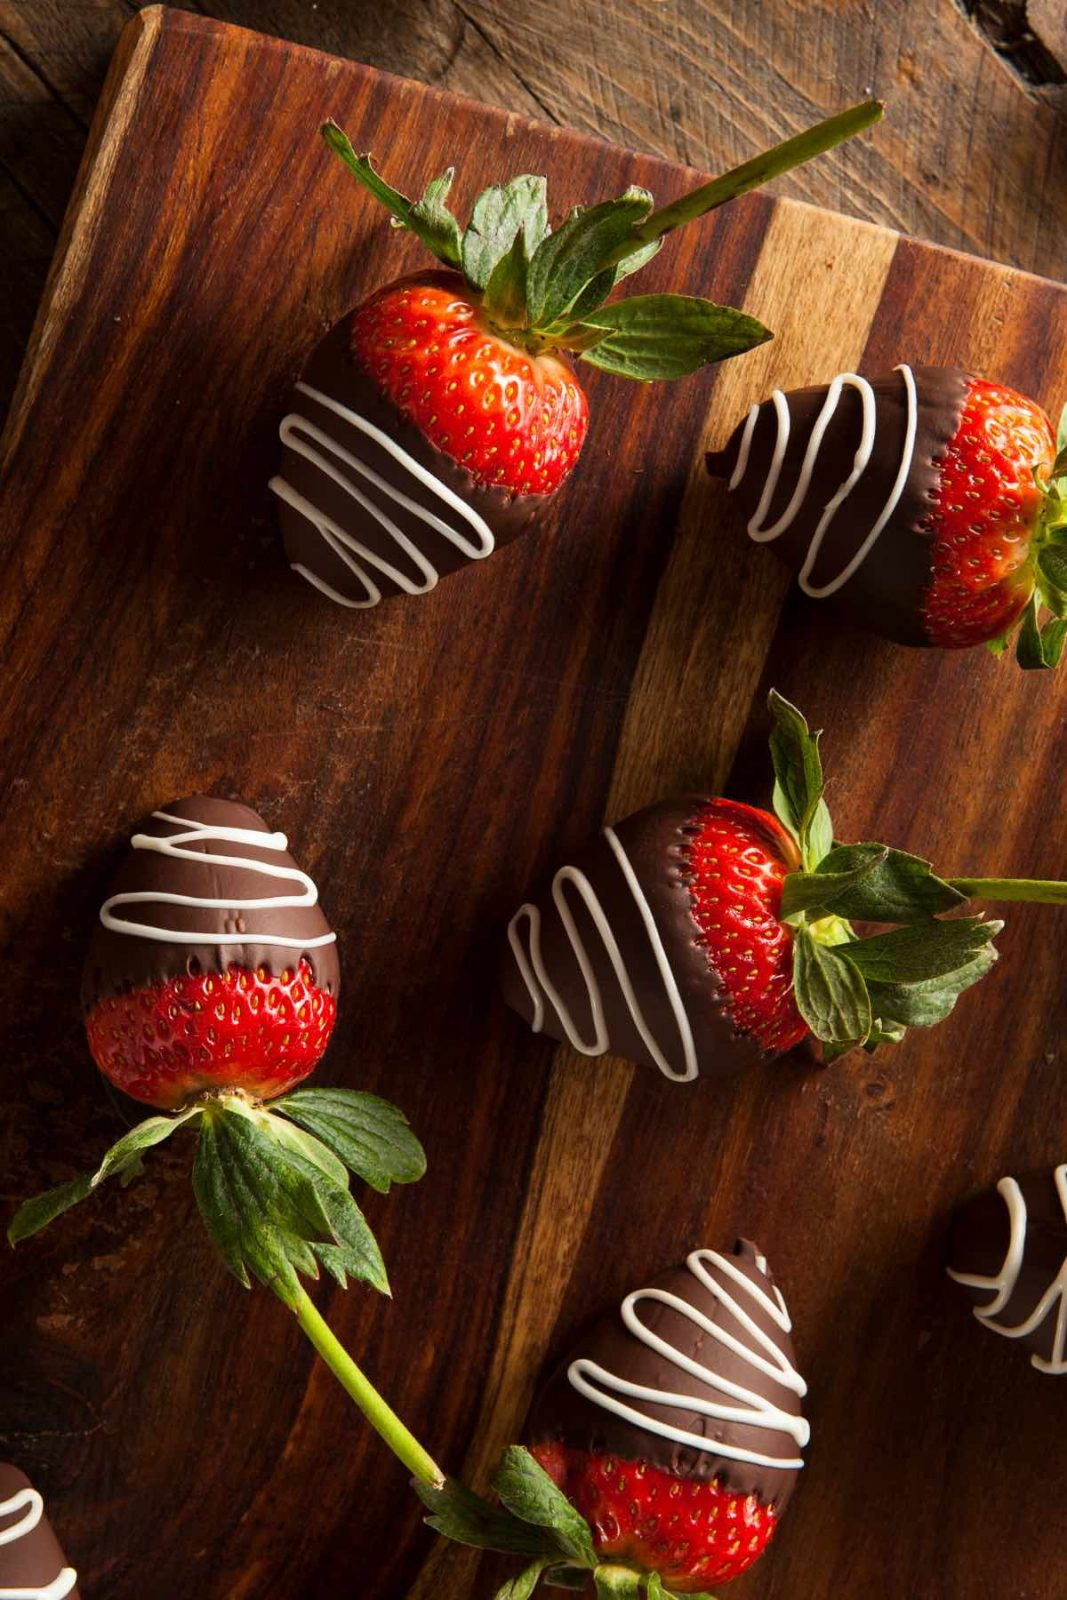 Chocolate Dipped Strawberries are an easy, delicious, beautiful treat that's great for valentine's gift or dessert. In addition to the regular strawberry shape, you can easily turn them into heart-shaped strawberries. Here is a step-by-step guide to how to make the best chocolate strawberries!